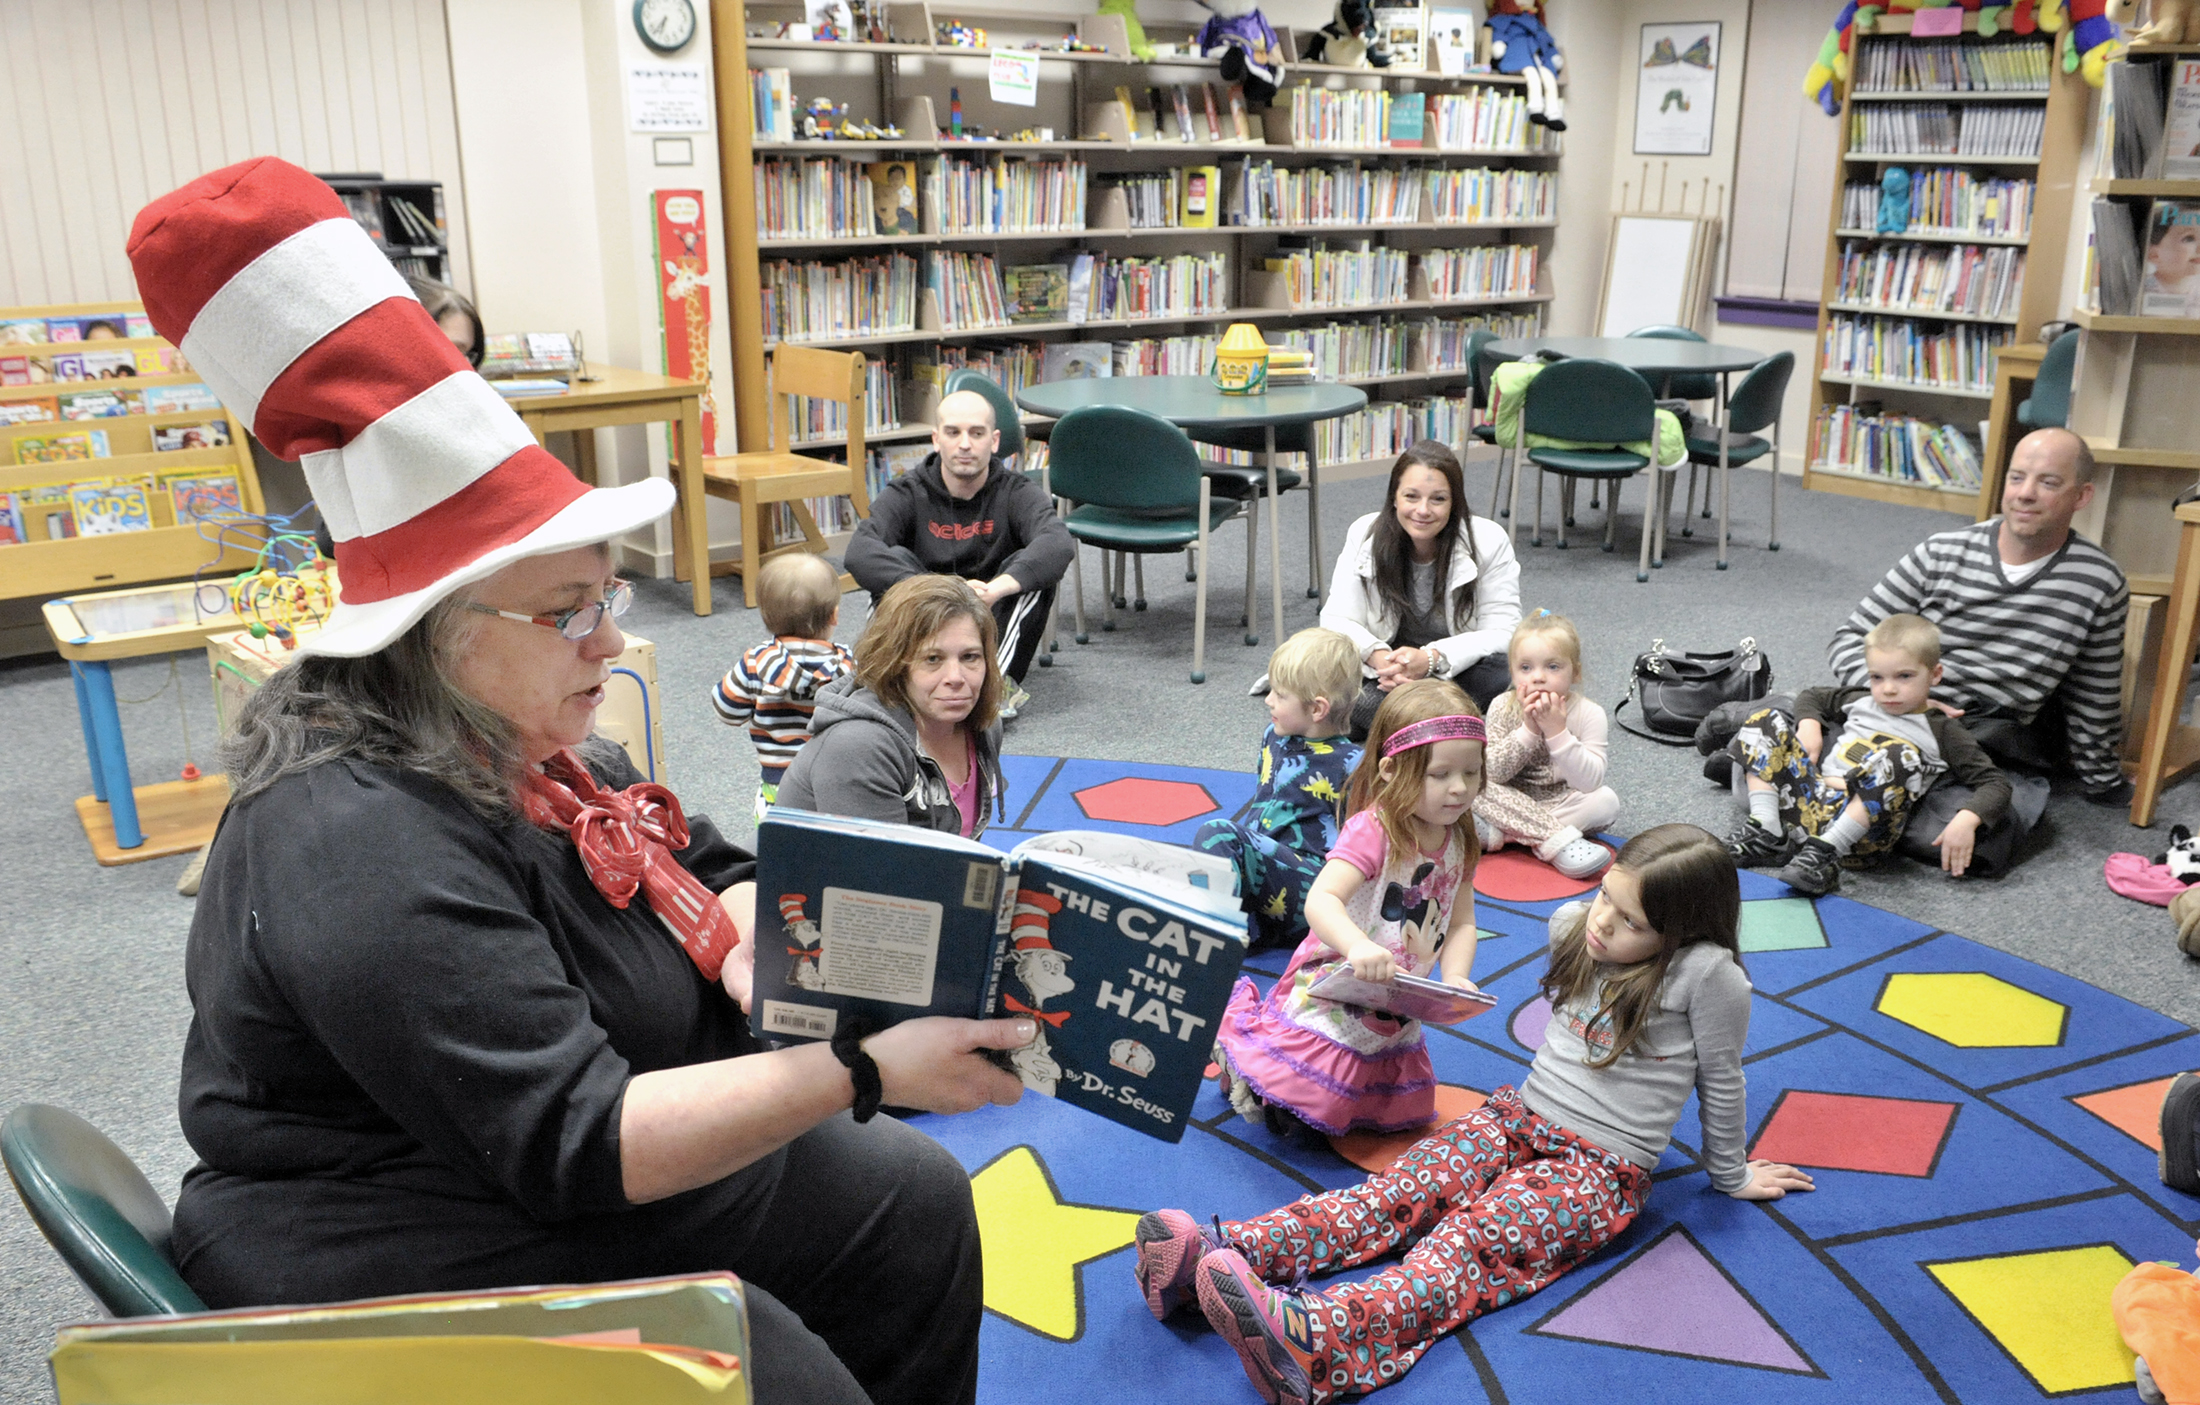 Library has activities and programs for all